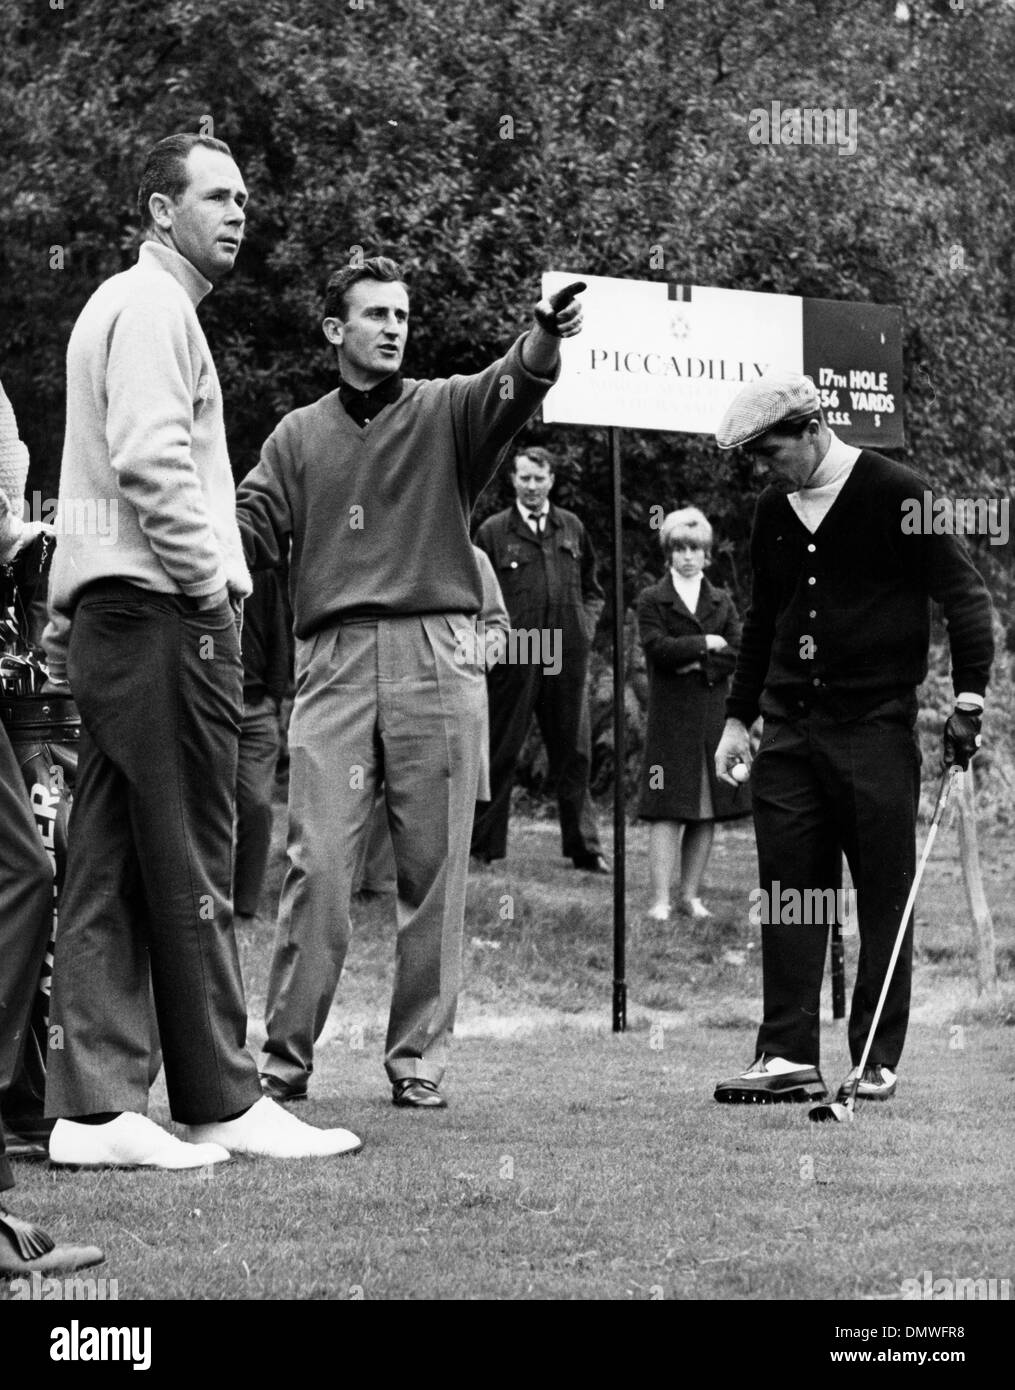 Oct. 13, 1965 - London, England, U.K. - Golfer GARY PLAYER and TED DEXTER at the Piccadilly World Match Golf Tournament at Wentworth. (Credit Image: © KEYSTONE Pictures USA/ZUMAPRESS.com) - Stock Image